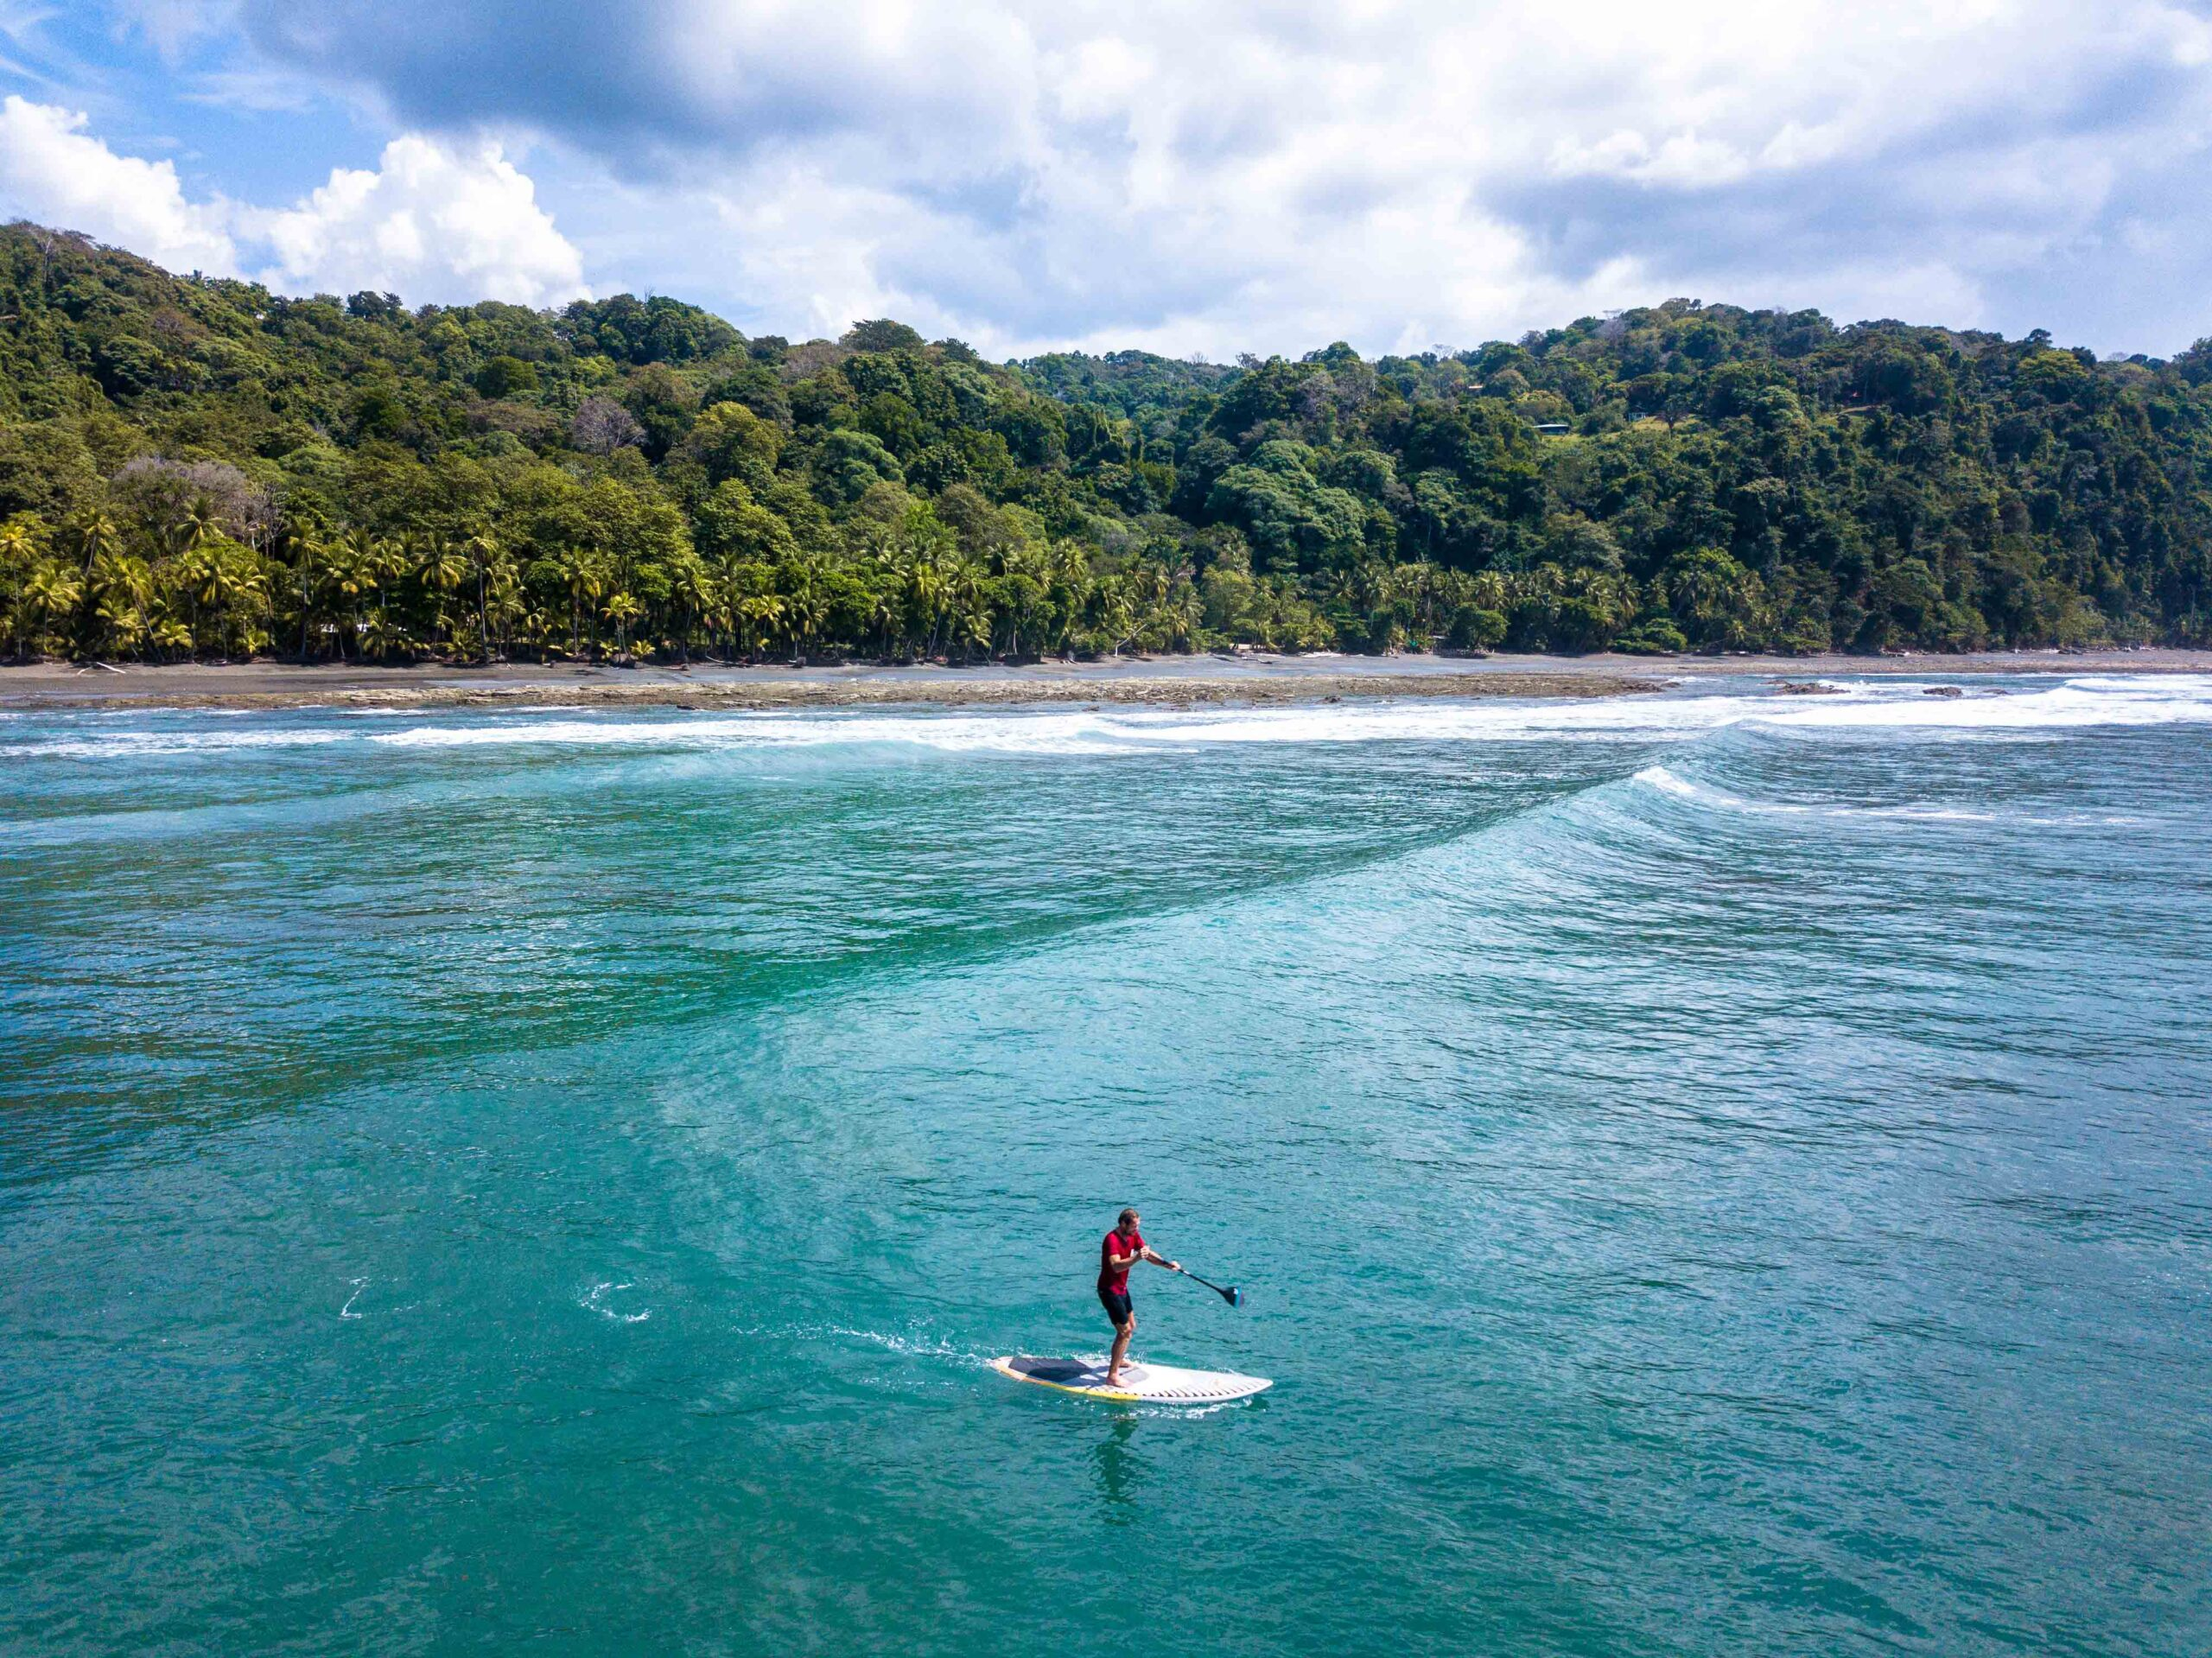 Stand up paddle boarding in Punta Banco Costa Rica